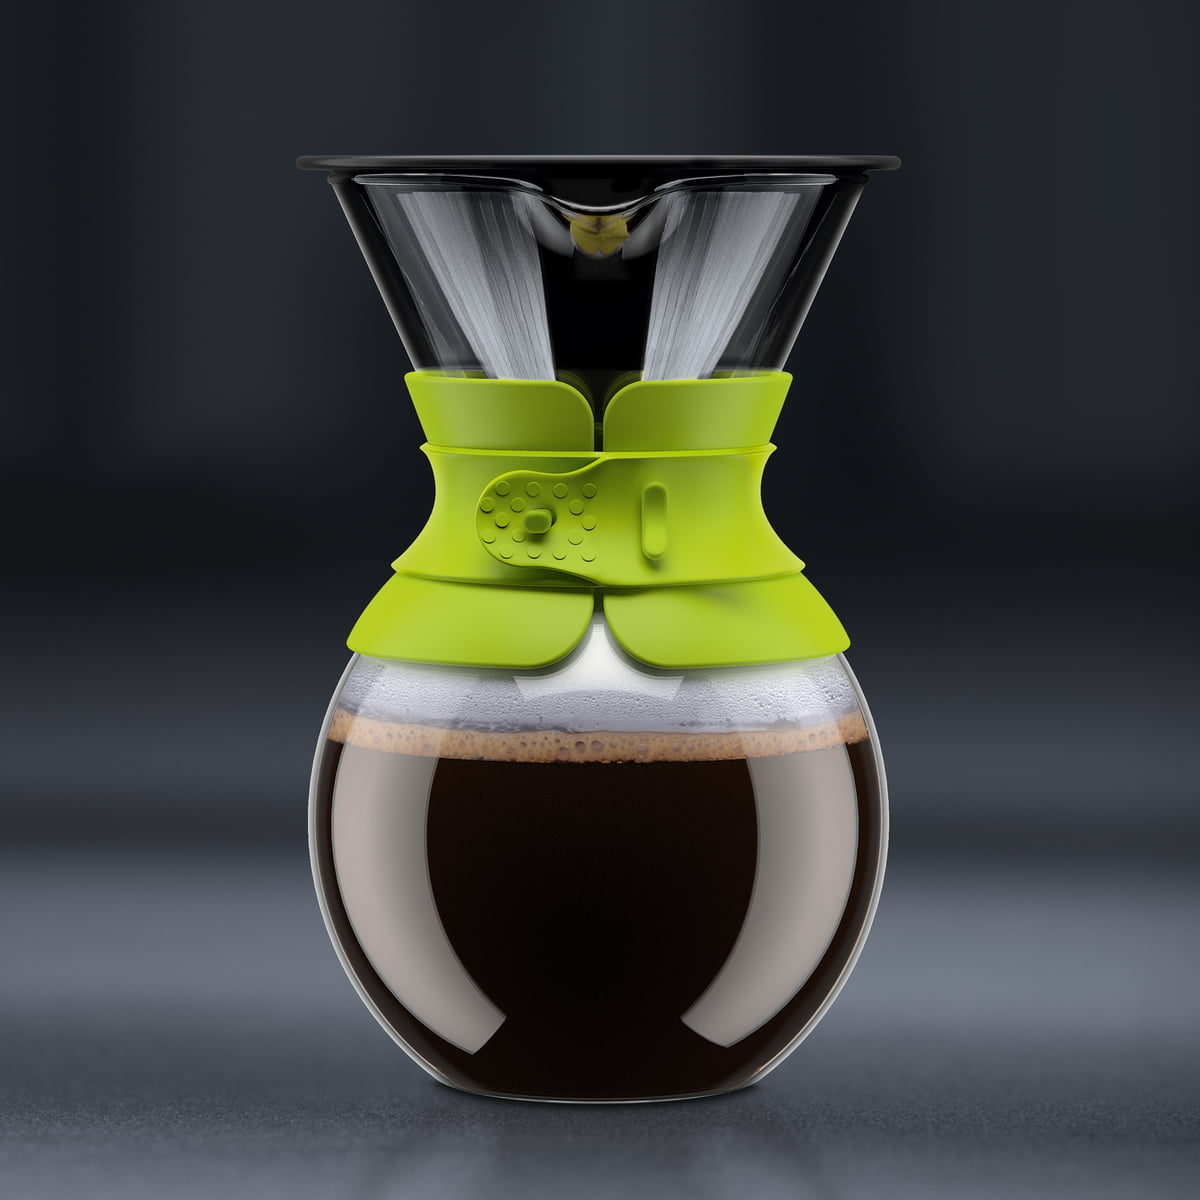 Bodum Pour Over Coffee Maker With Permanent Filter : Bodum - Pour Over Coffee Maker with permanent filter